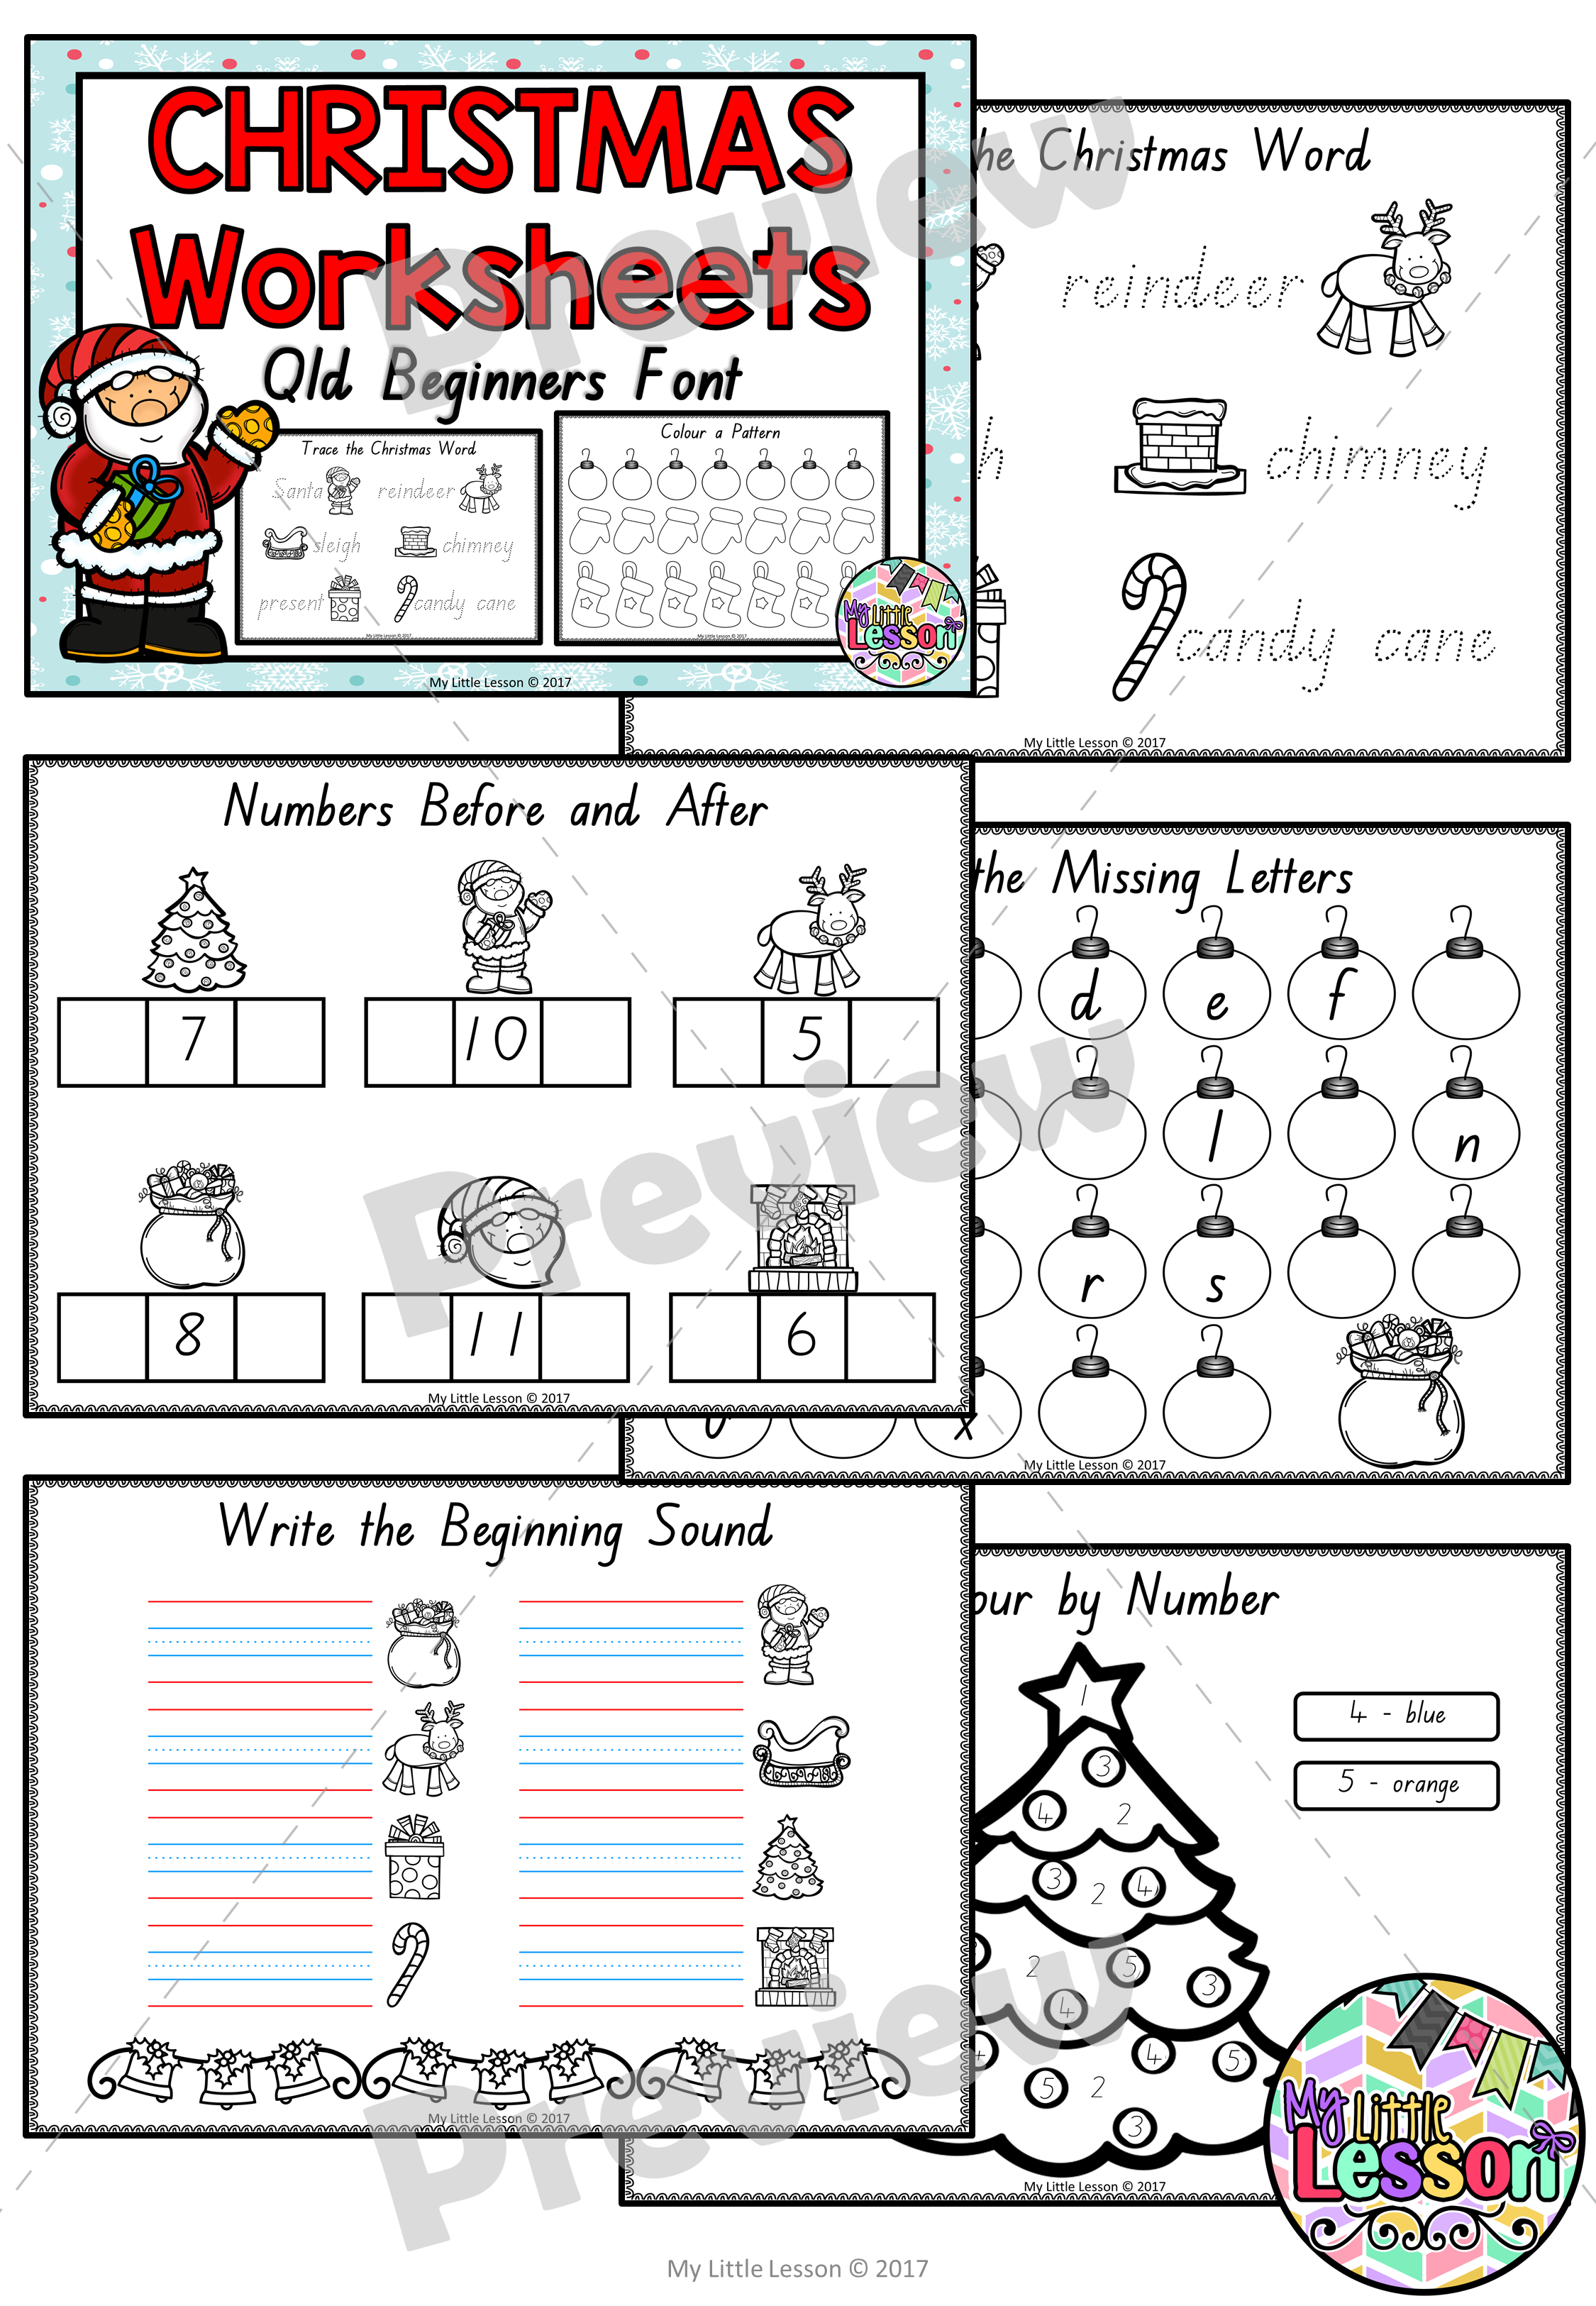 Christmas Worksheets QLD Beginners Font - The Alphabet Tree